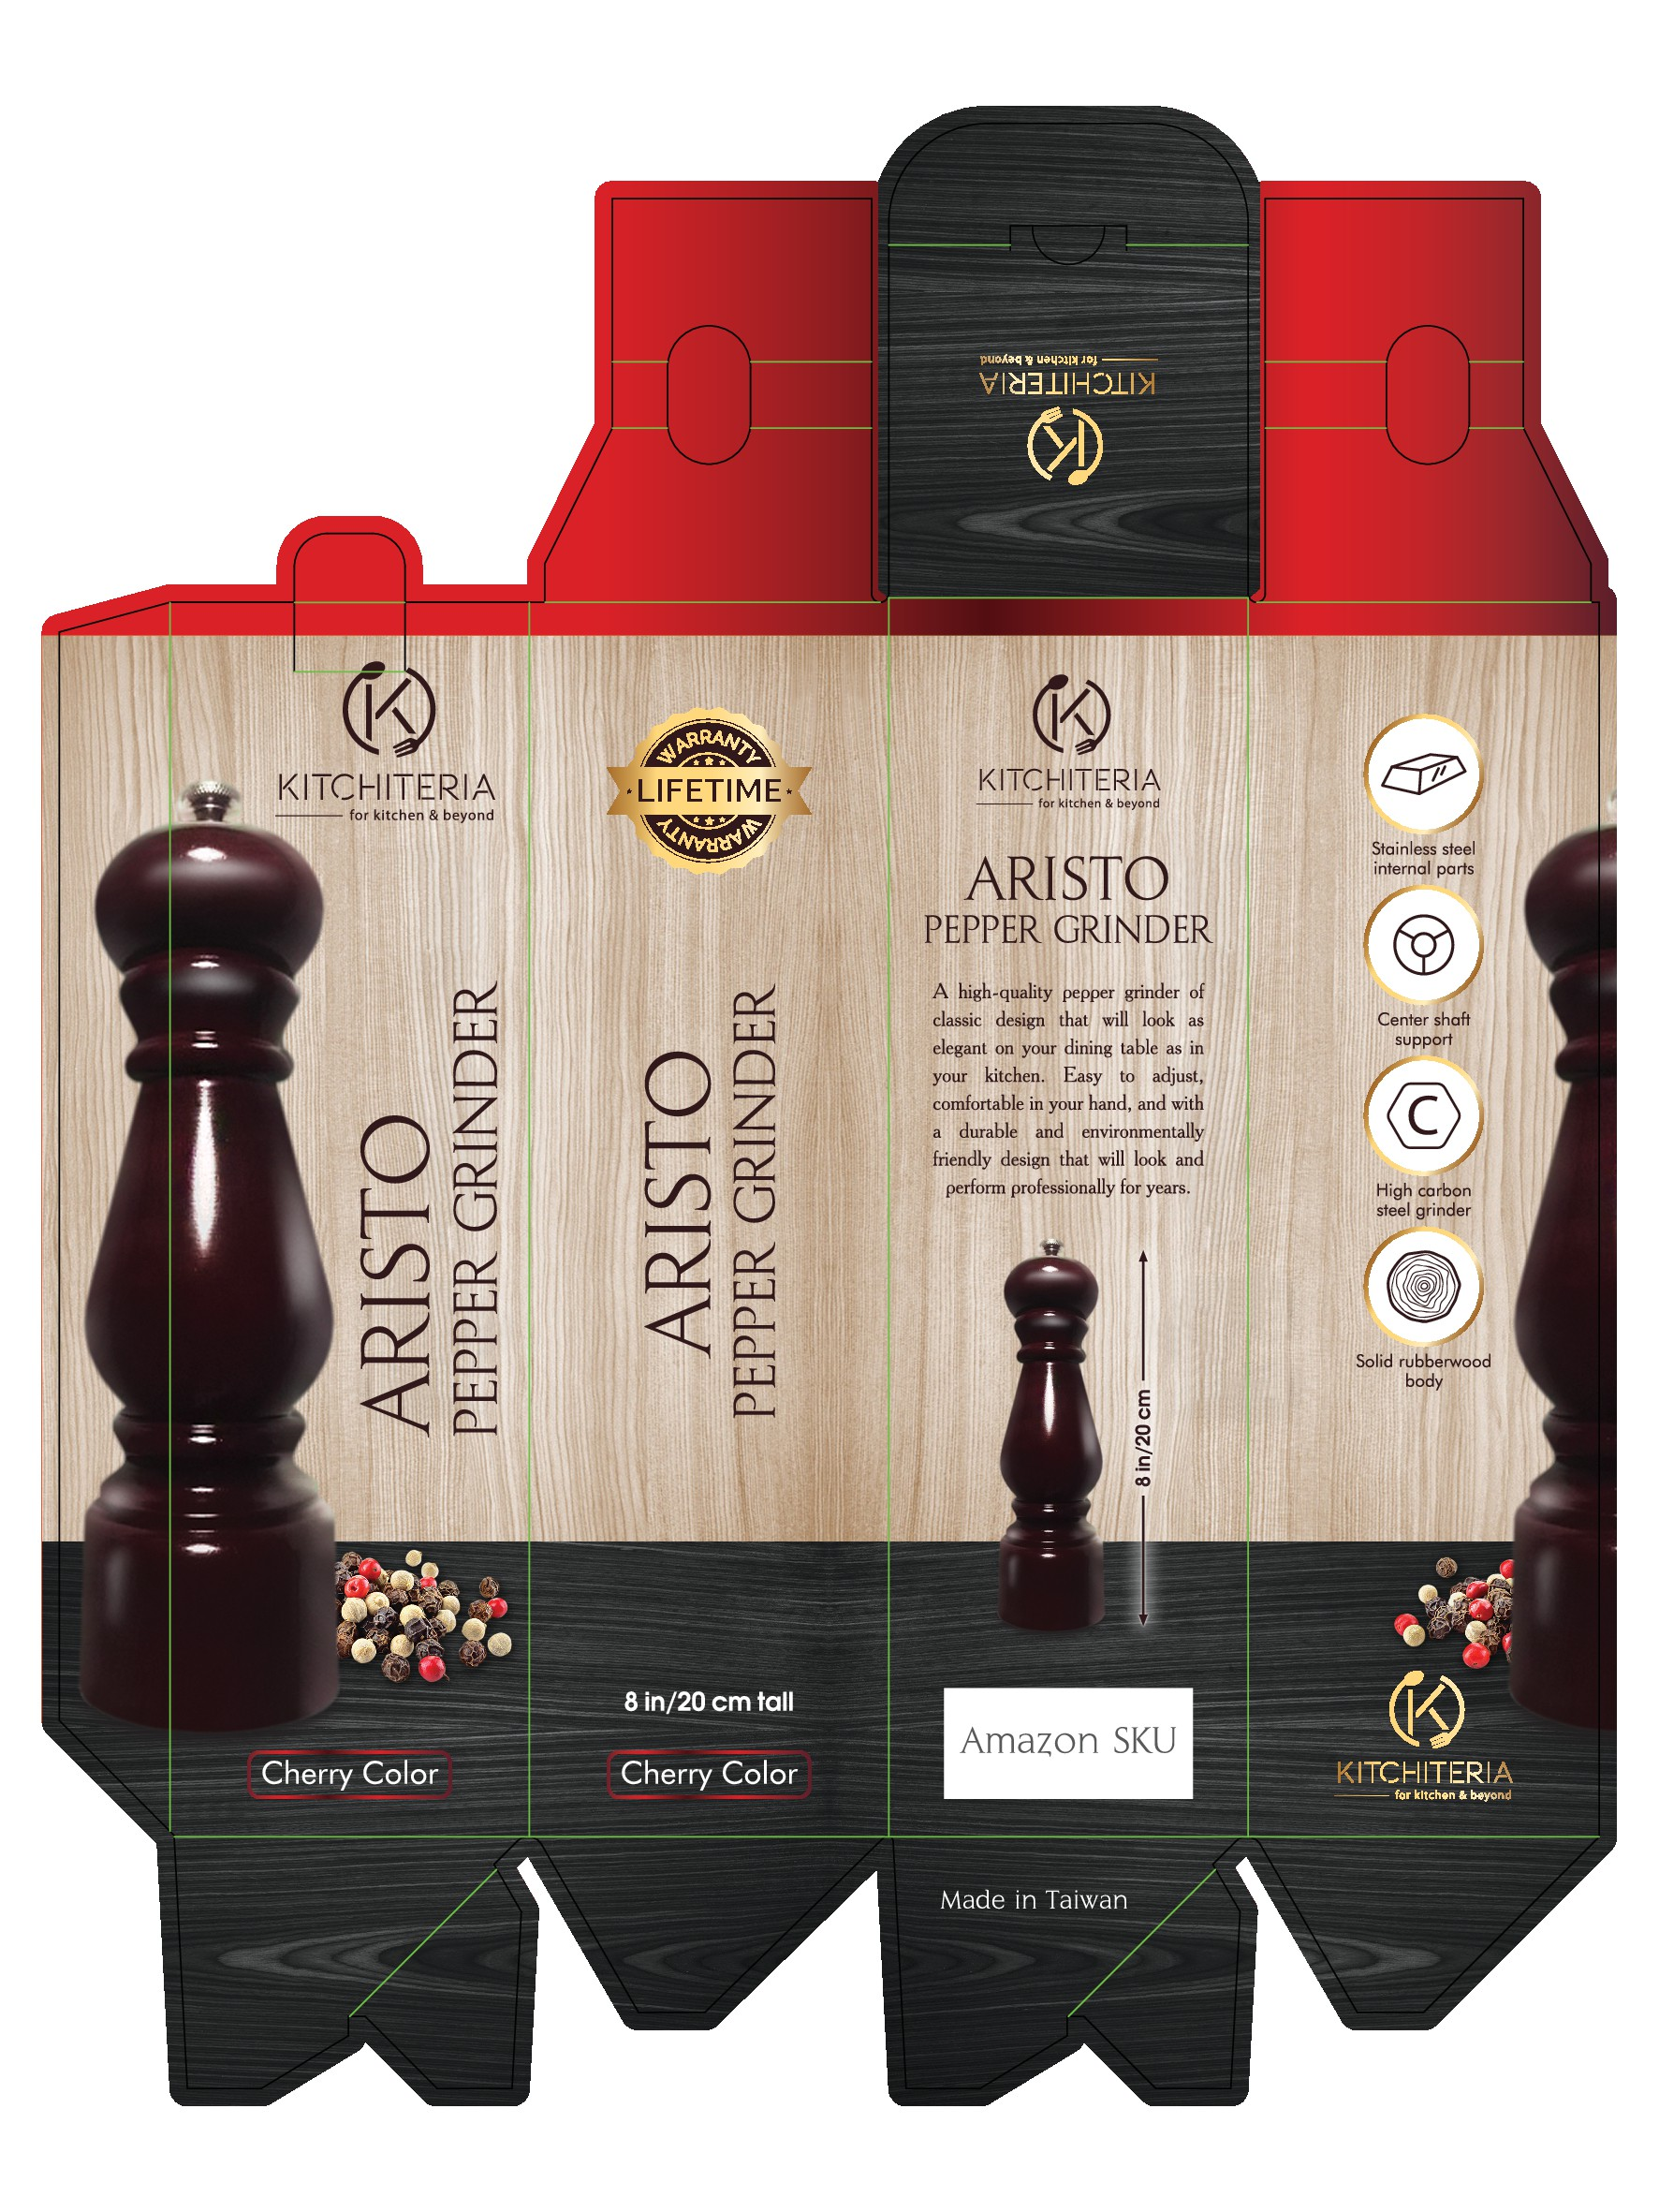 Design a sophisticated, but unexpected, package for a high-end pepper mill.